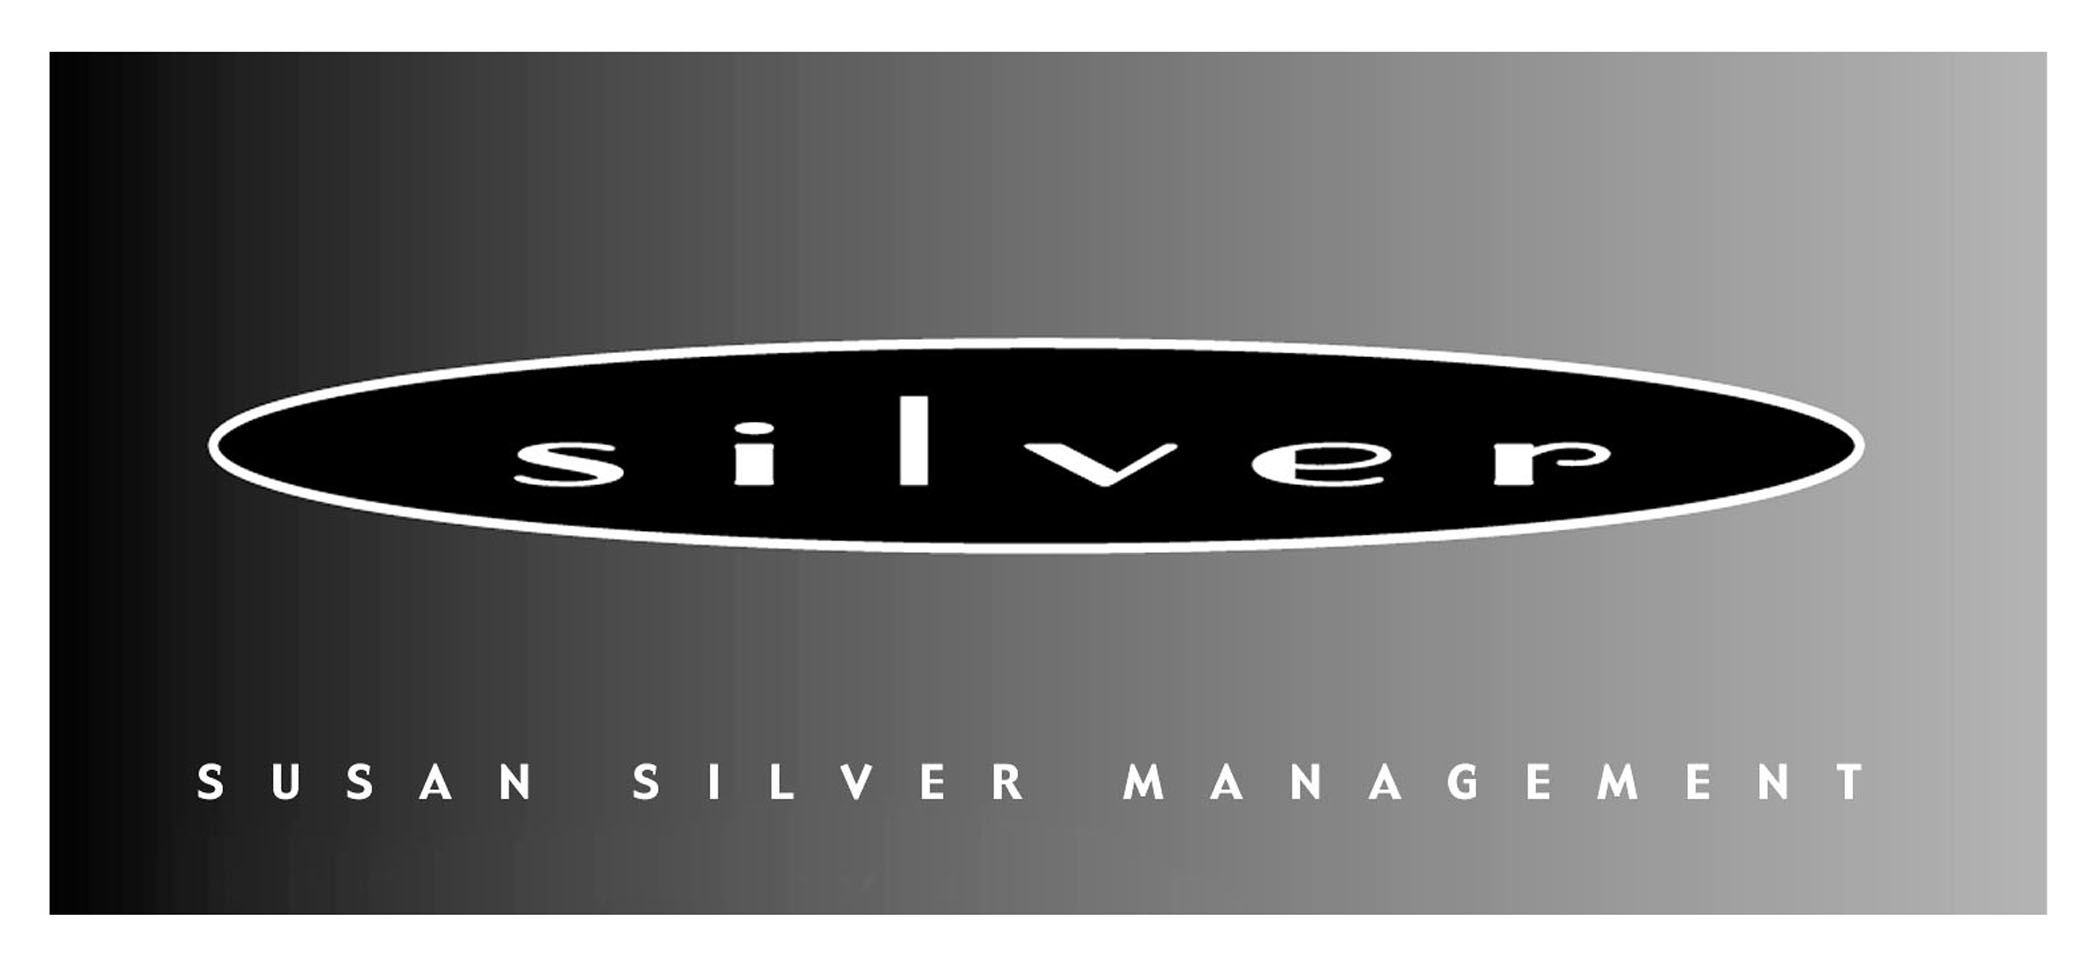 SILVER MGMT.